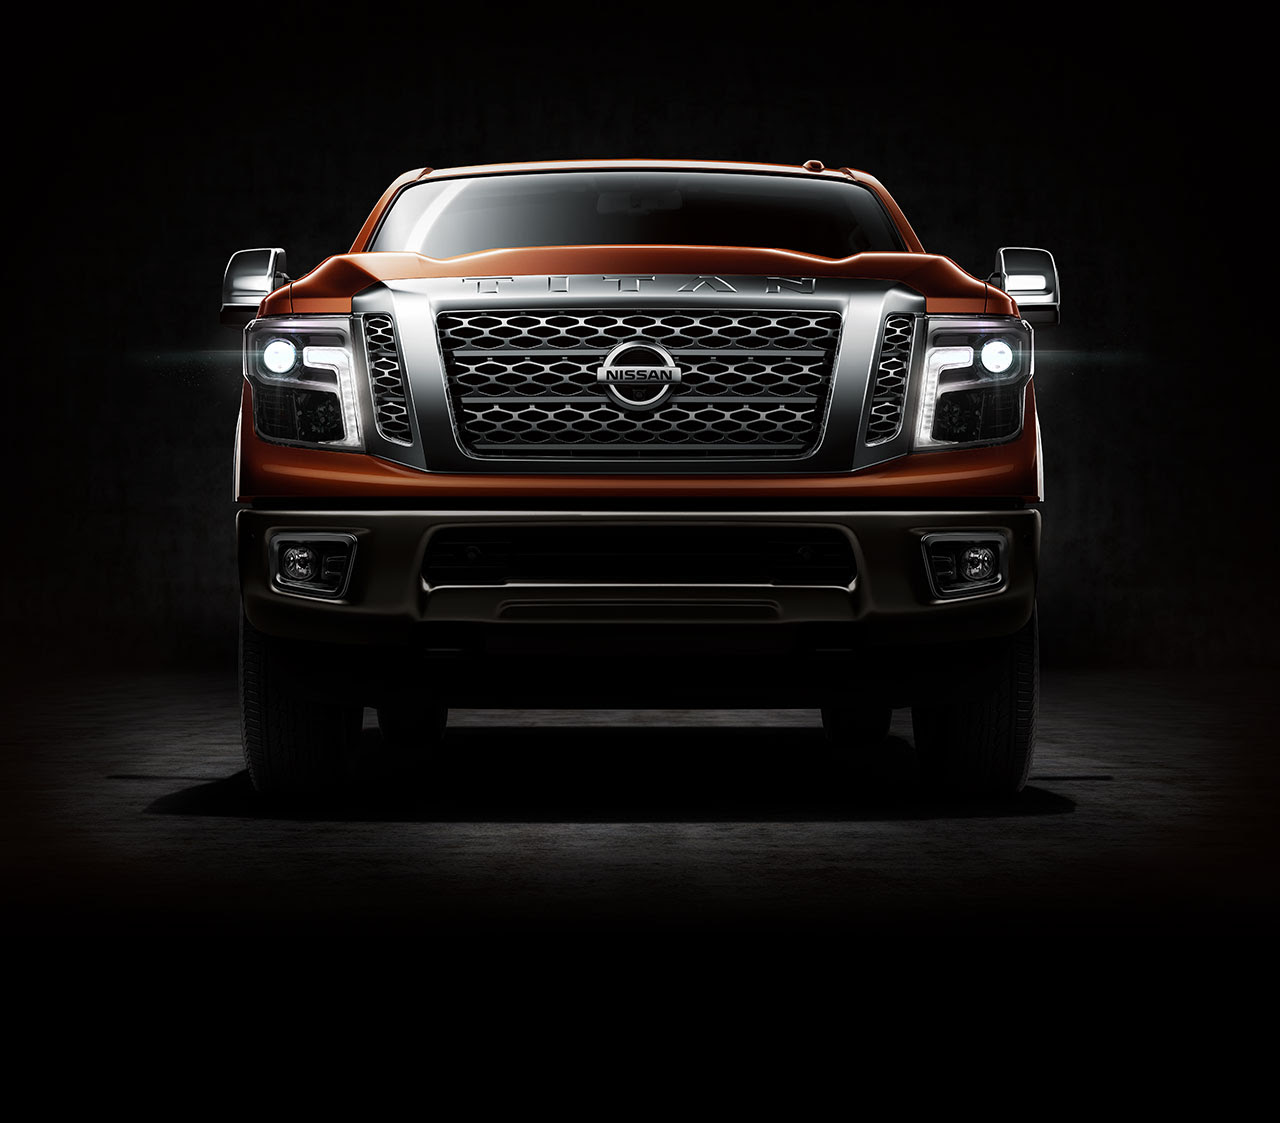 All New Nissan Titan XD 2016 front view main image